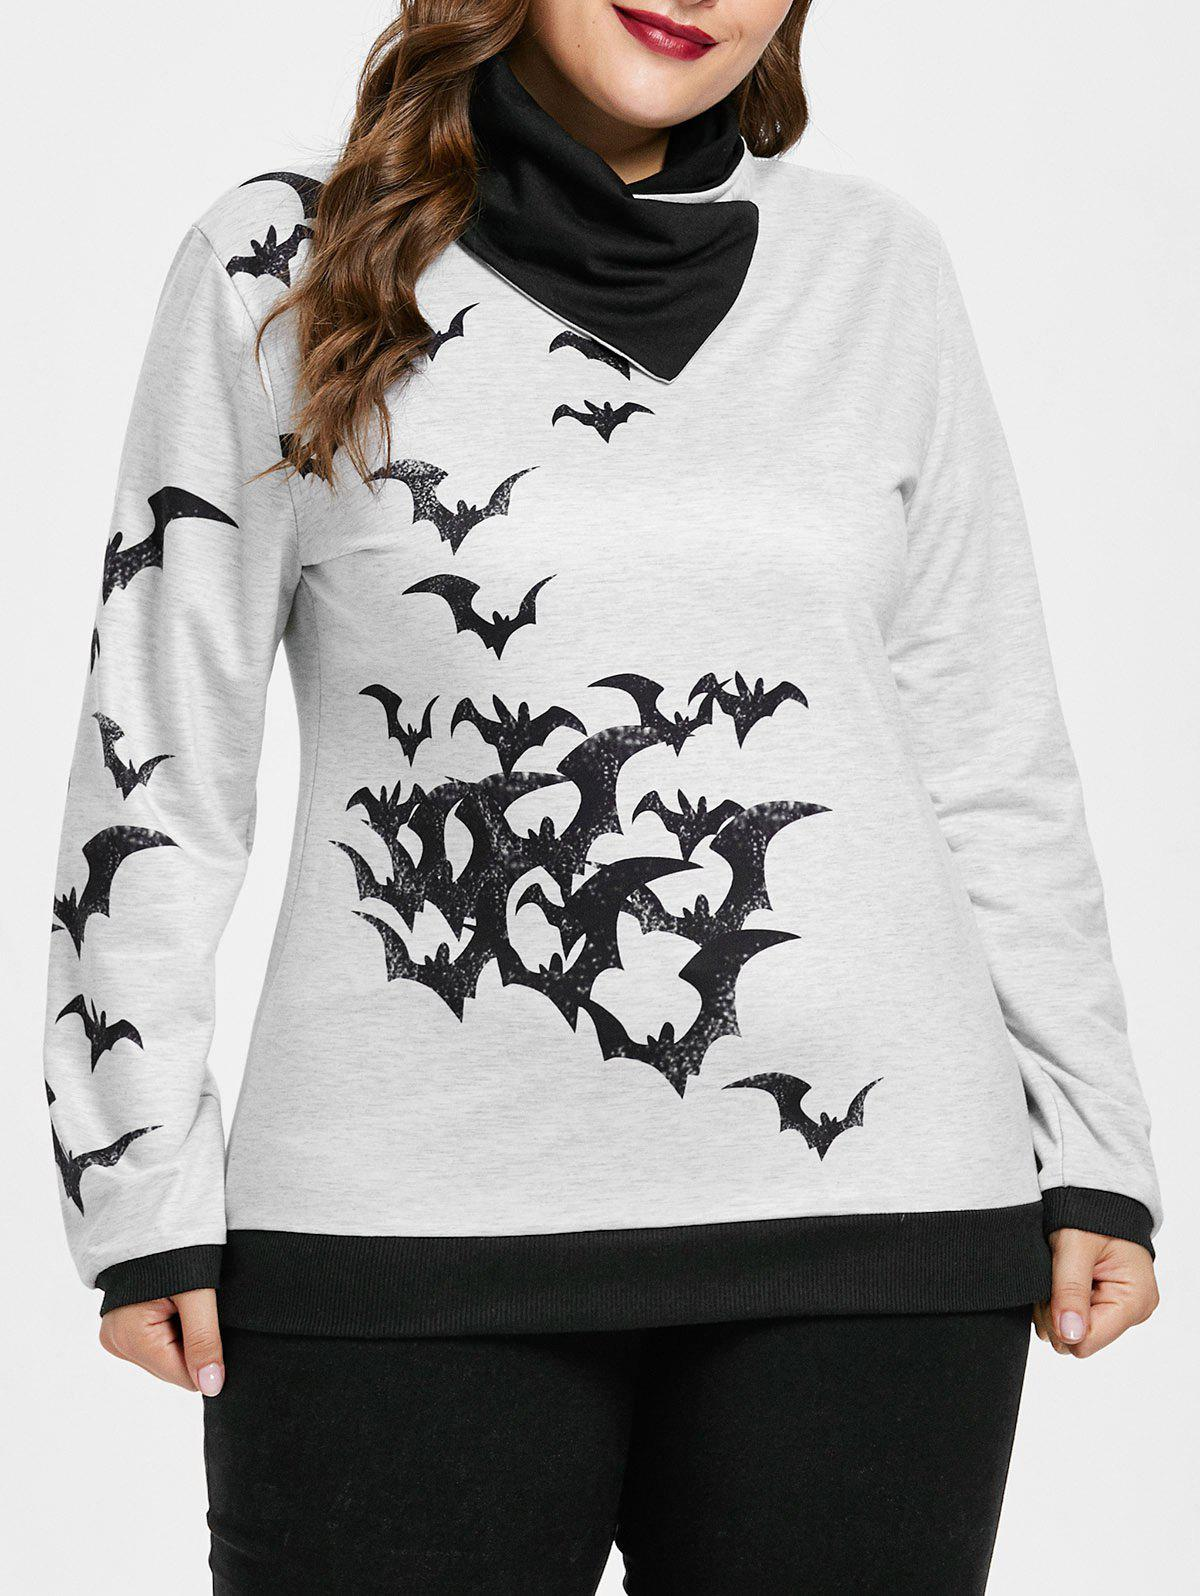 Plus Size Color Block Halloween Sweatshirt - LIGHT GRAY 4X